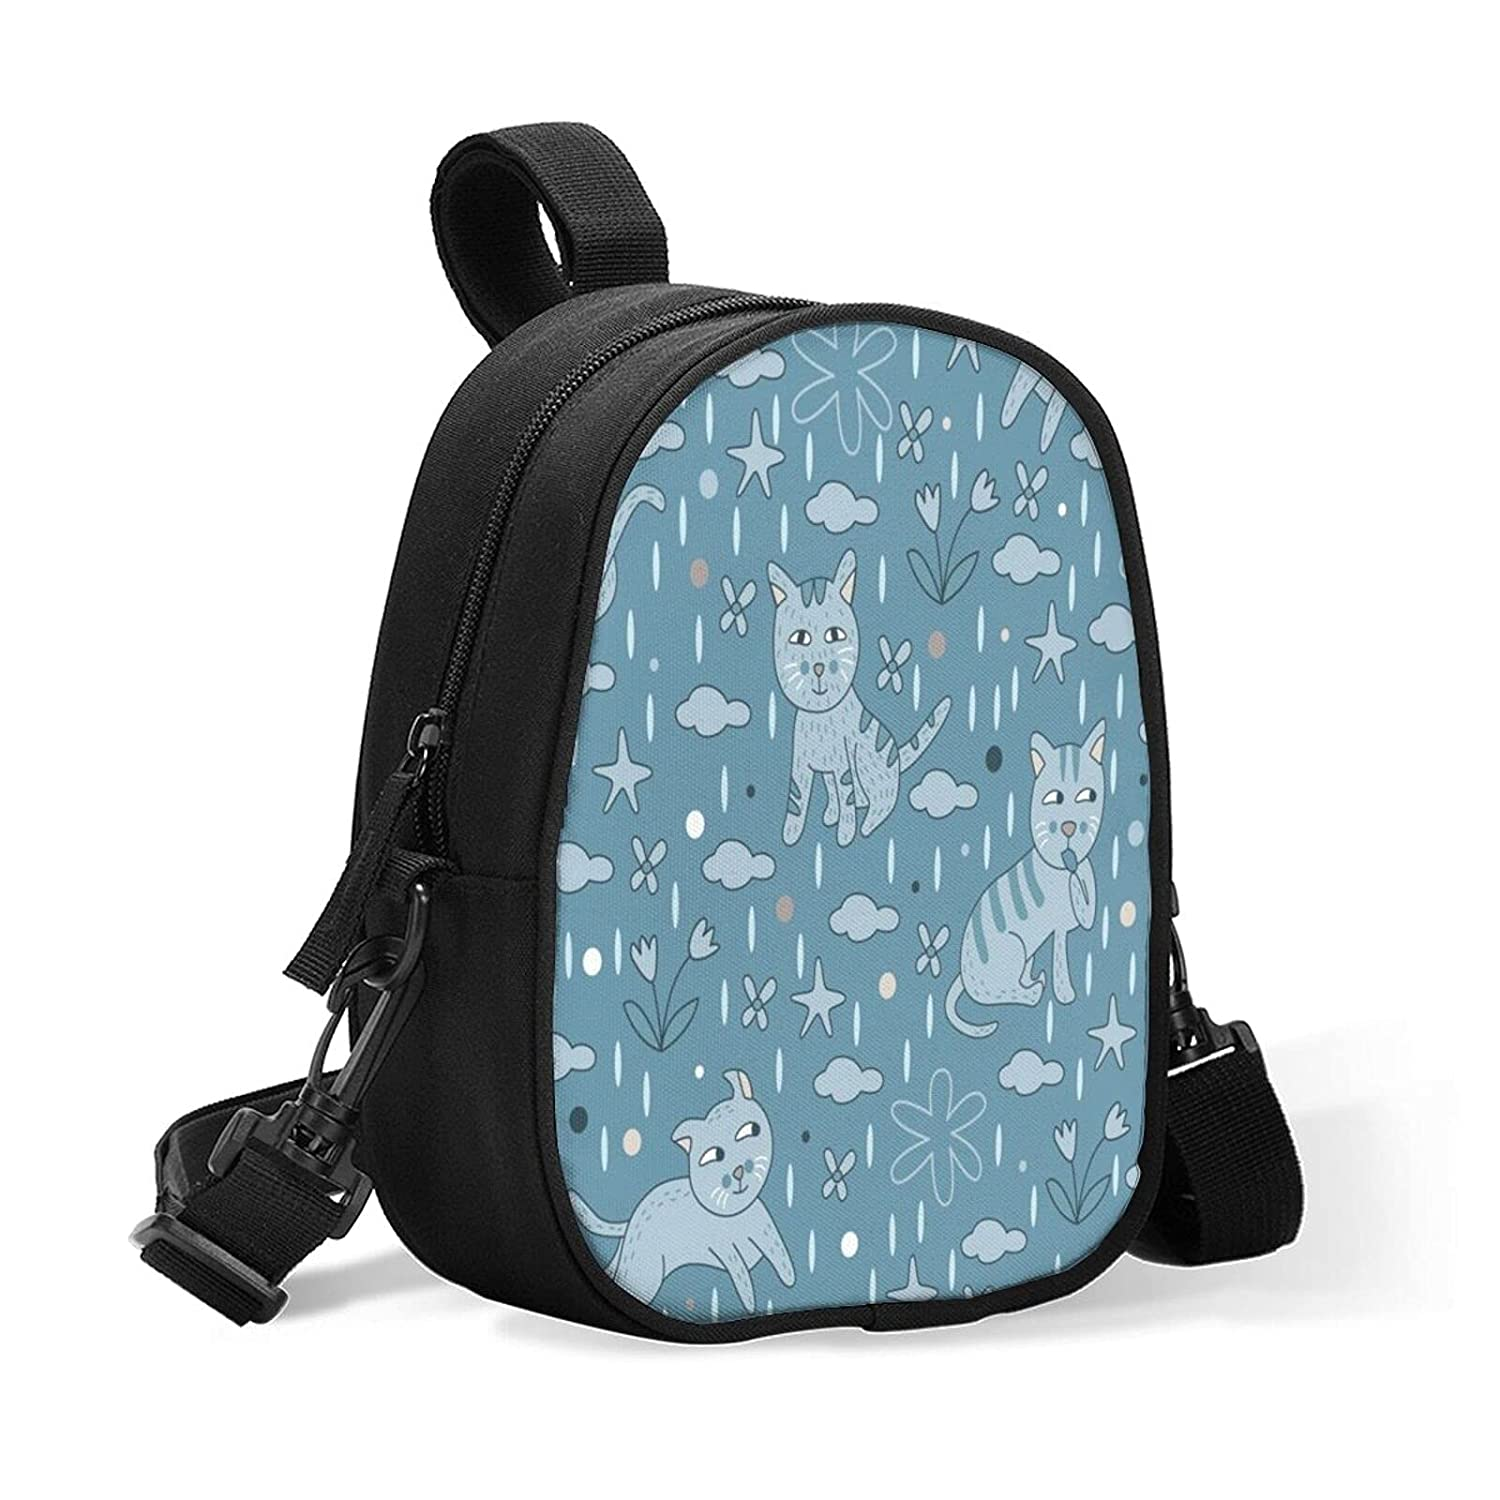 Sale item Blue Max 49% OFF Cats Insulated Baby Bottle Bag Daycare Size for Bre Upgrade